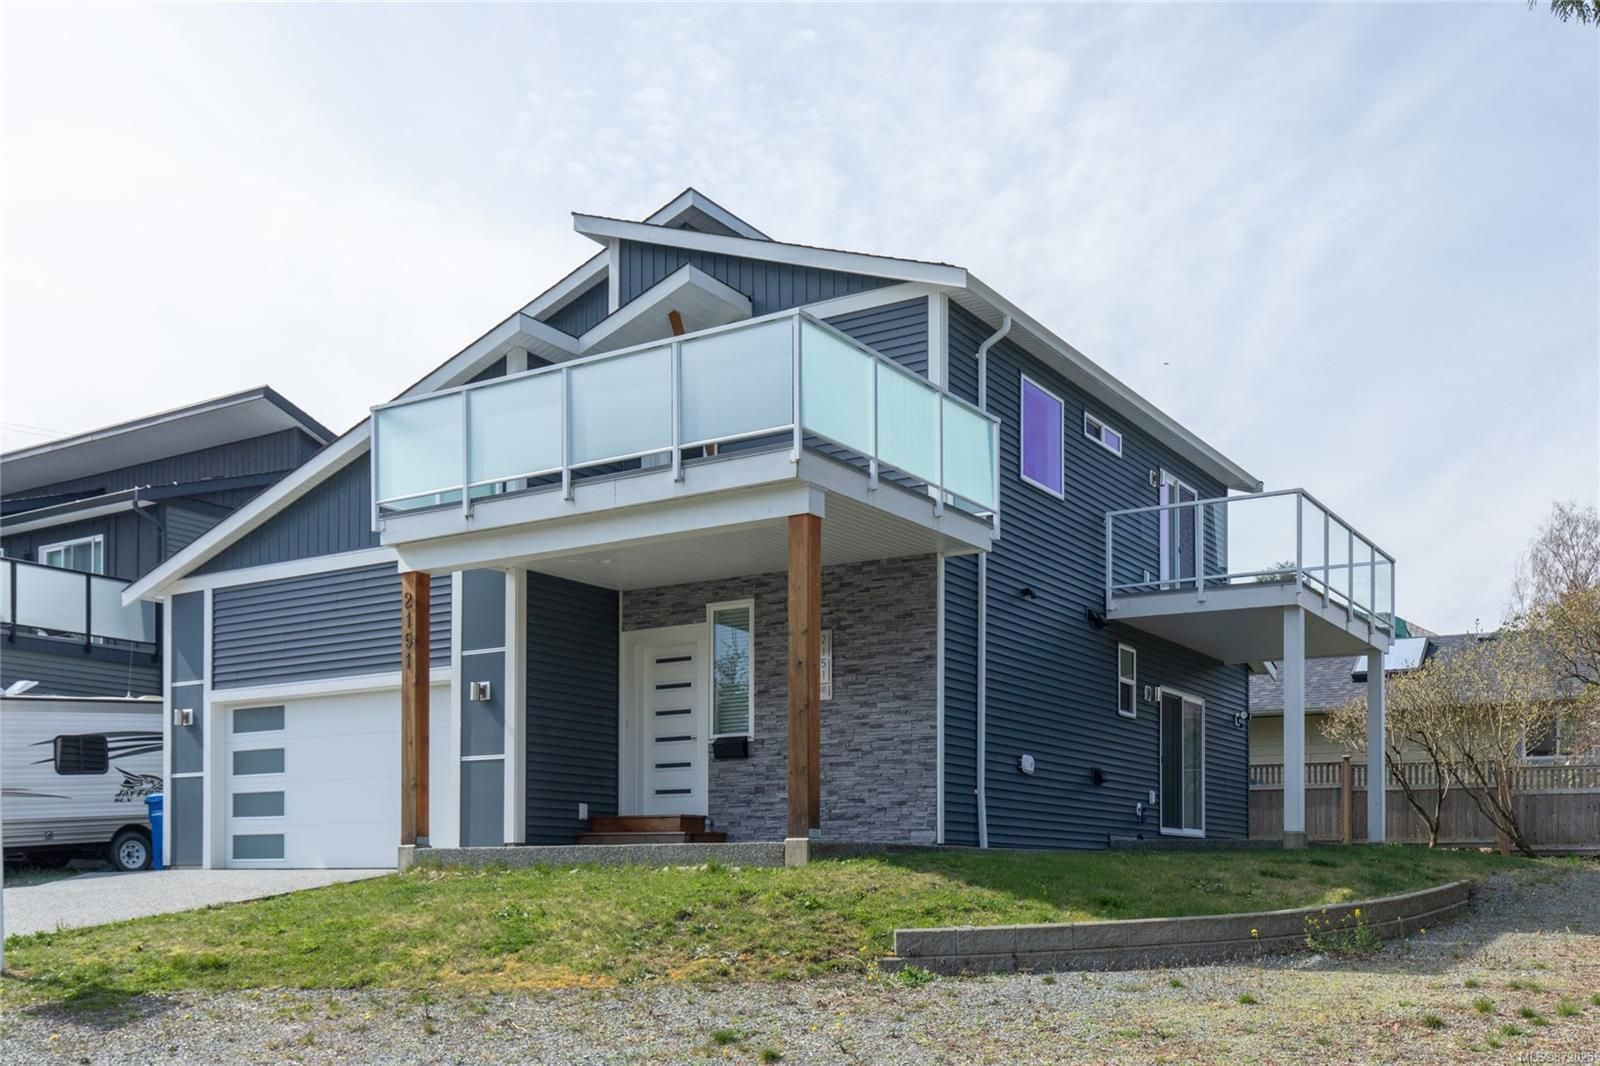 Main Photo: 2151 Ocean Terr in : Na Departure Bay House for sale (Nanaimo)  : MLS®# 872025